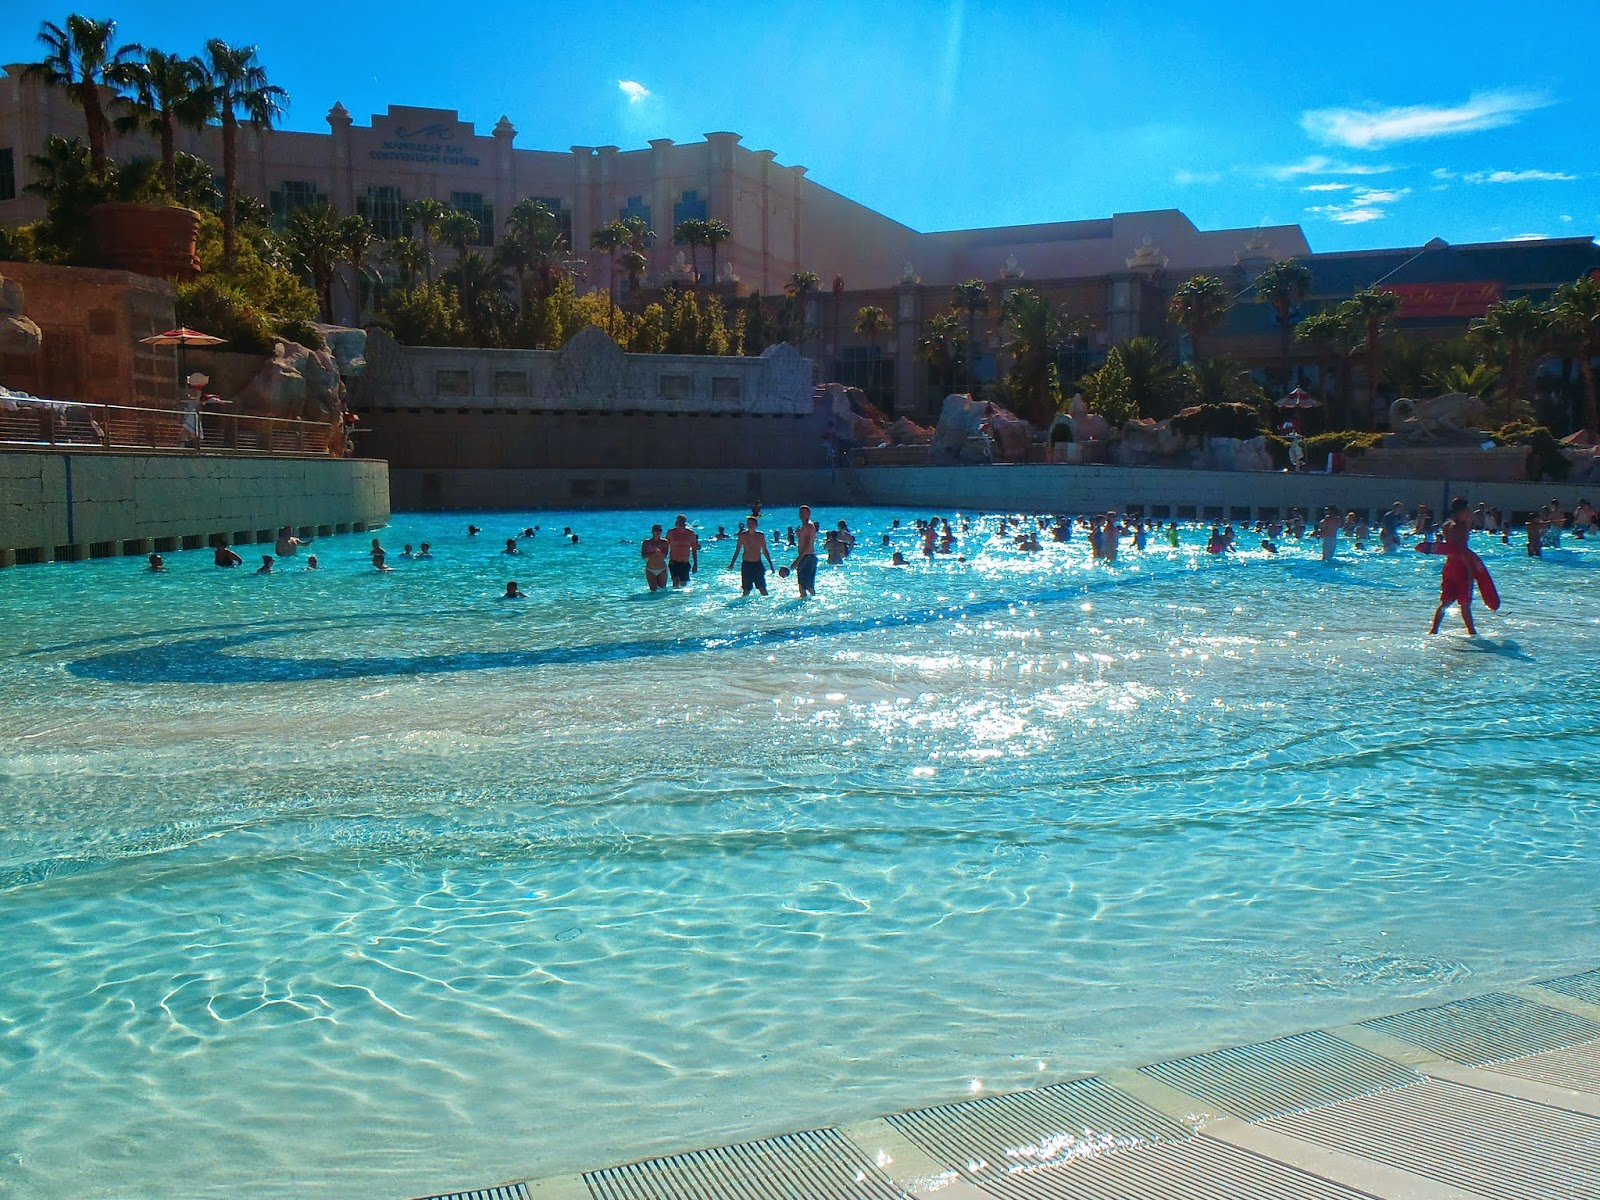 big swimming pool at he Mandalay bay hotel in vegas